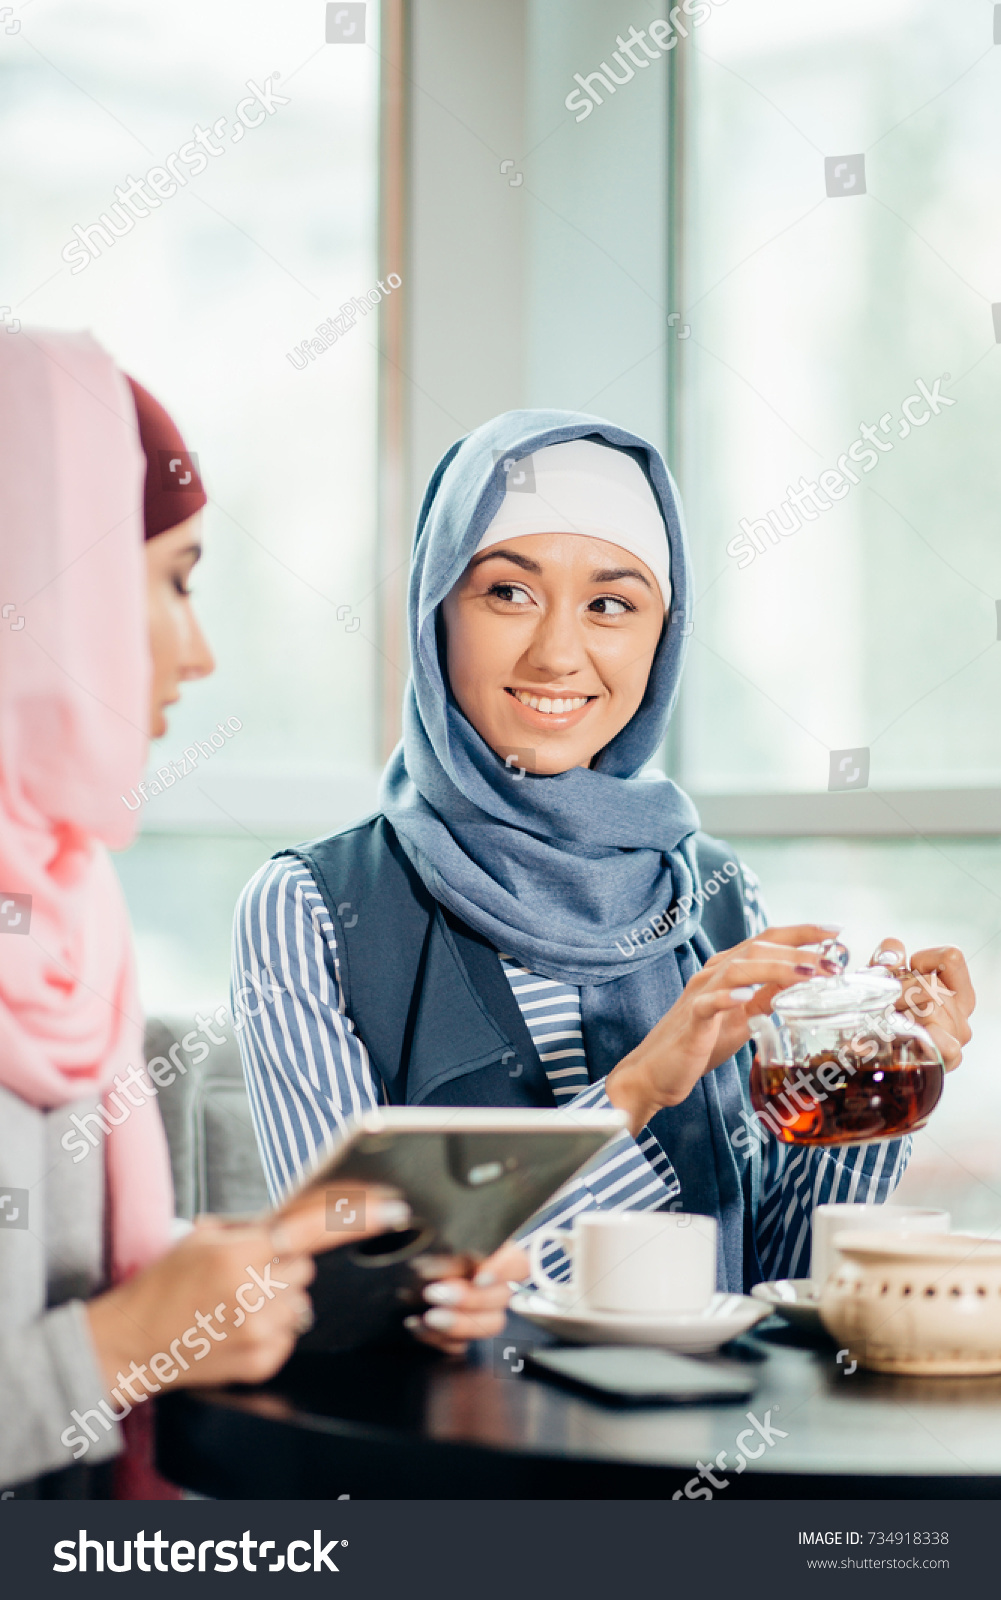 Female Muslim College Student Using Tablet Stock Photo (Royalty Free ...